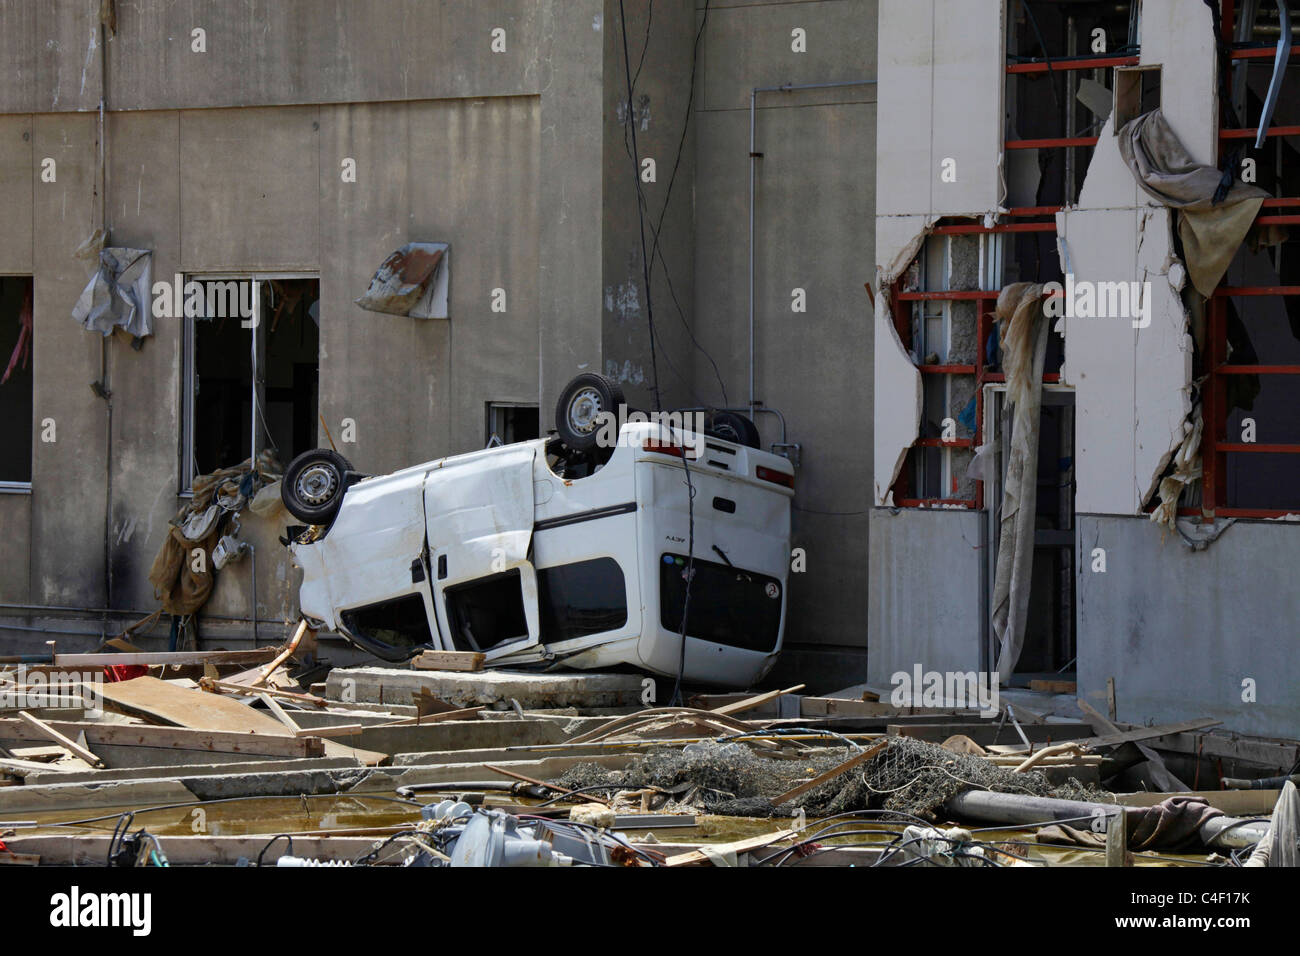 A motor car destroyed by Tsunami 11th March 2011 - Stock Image